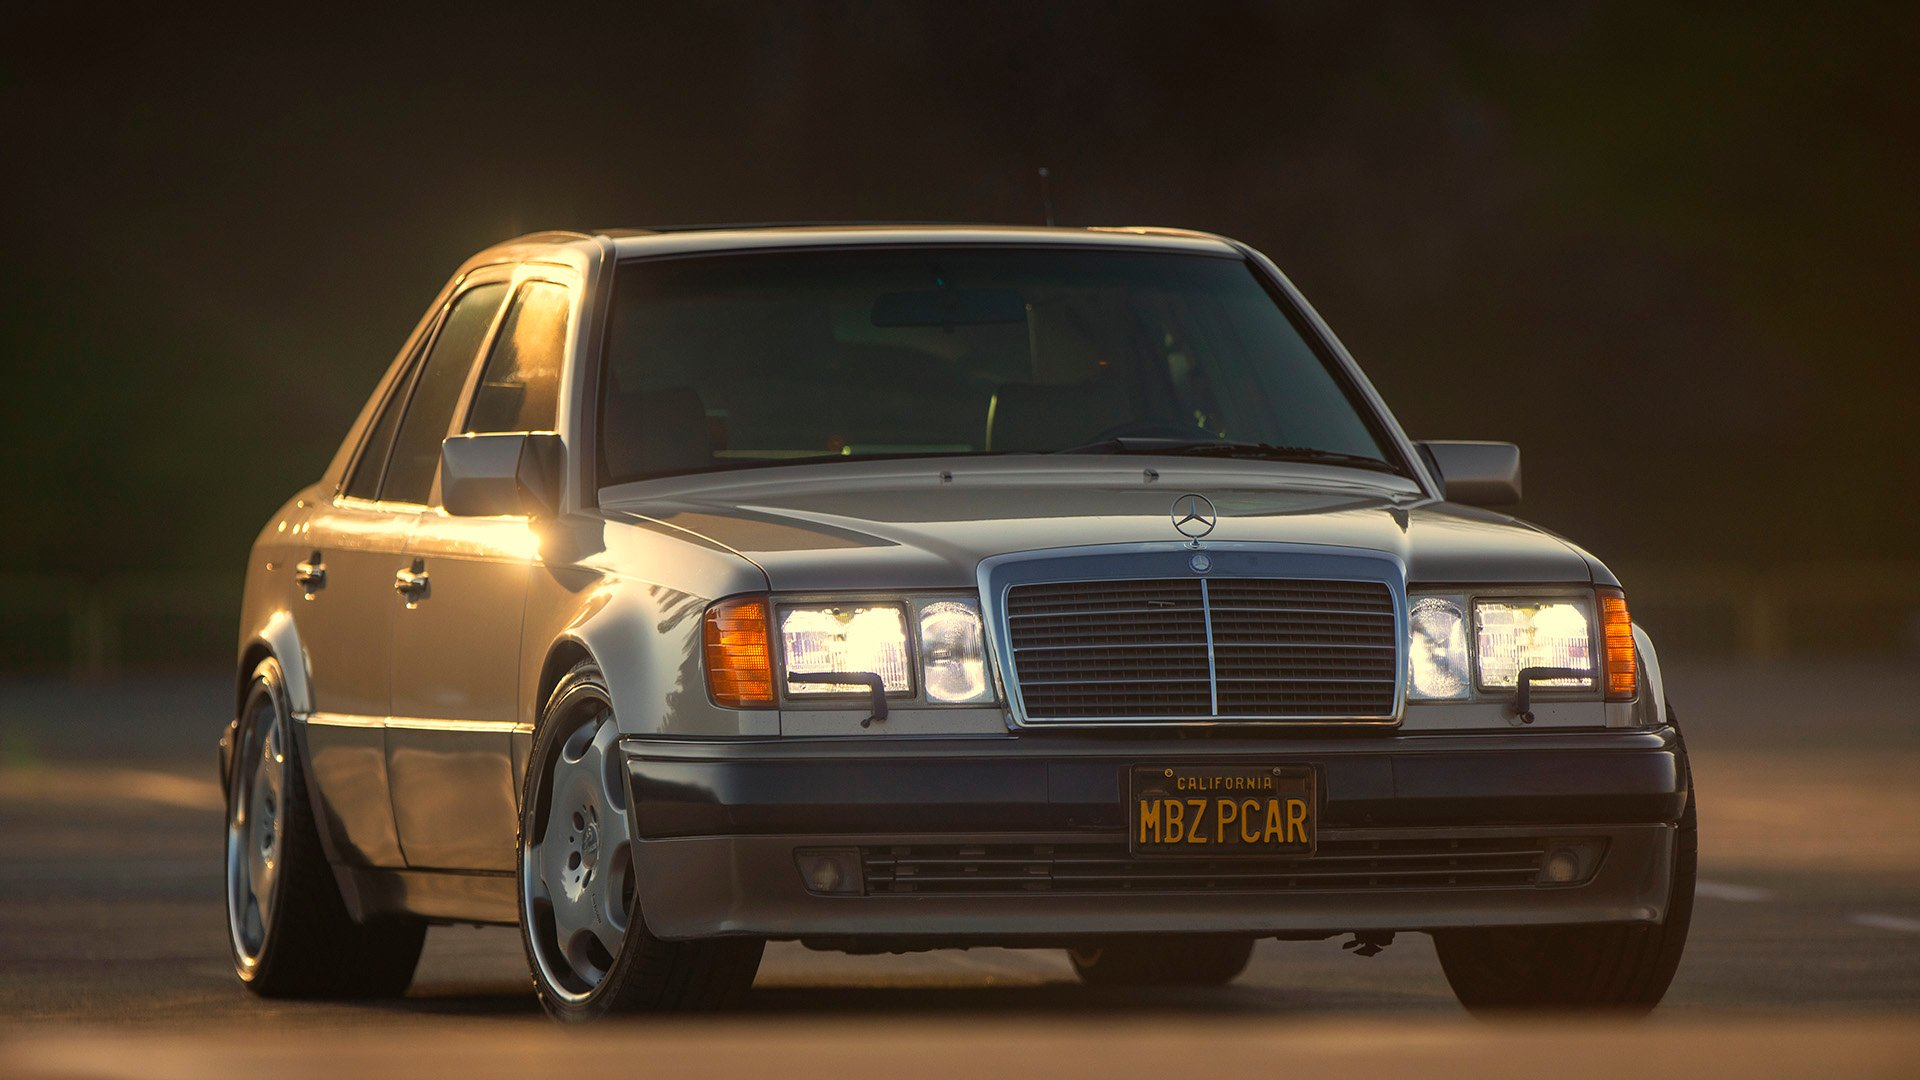 The Benz That Porsche Built - W124 Mercedes-Benz 500E